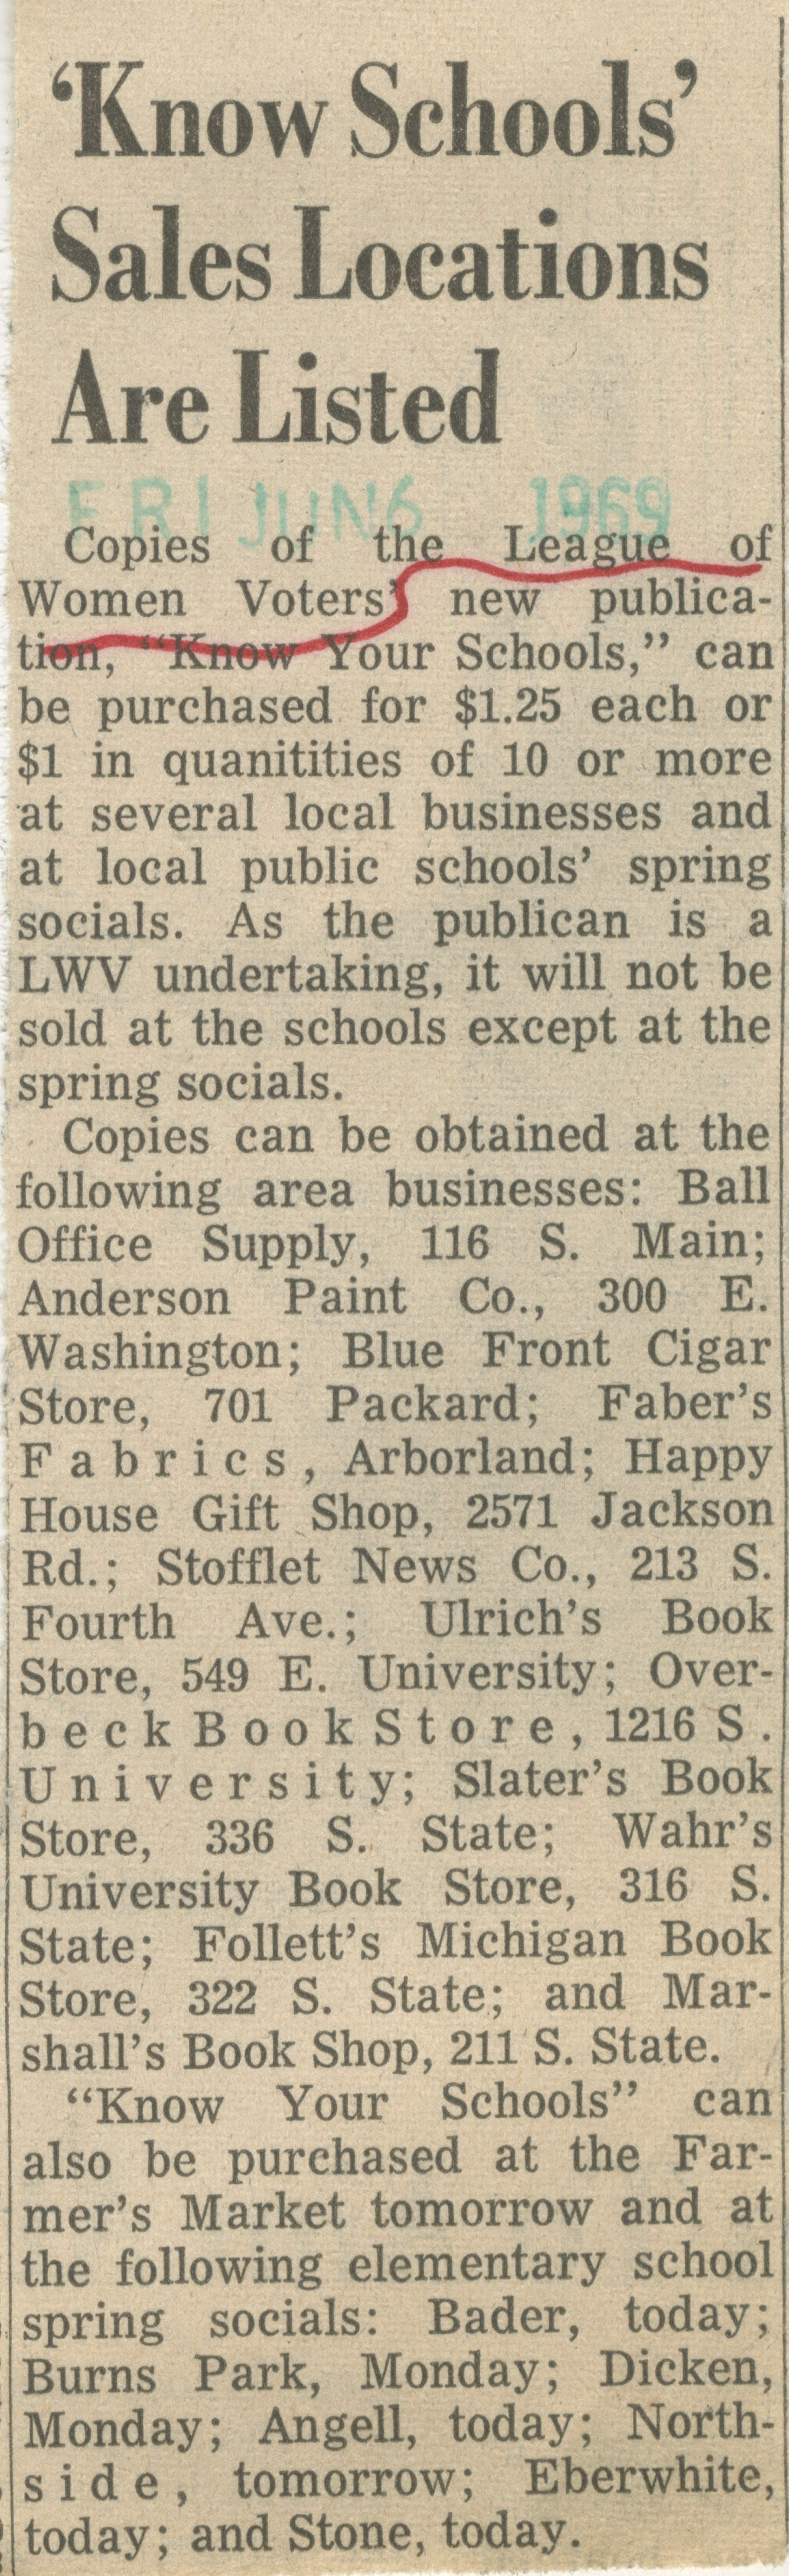 'Know Schools' Sales Locations Are Listed image